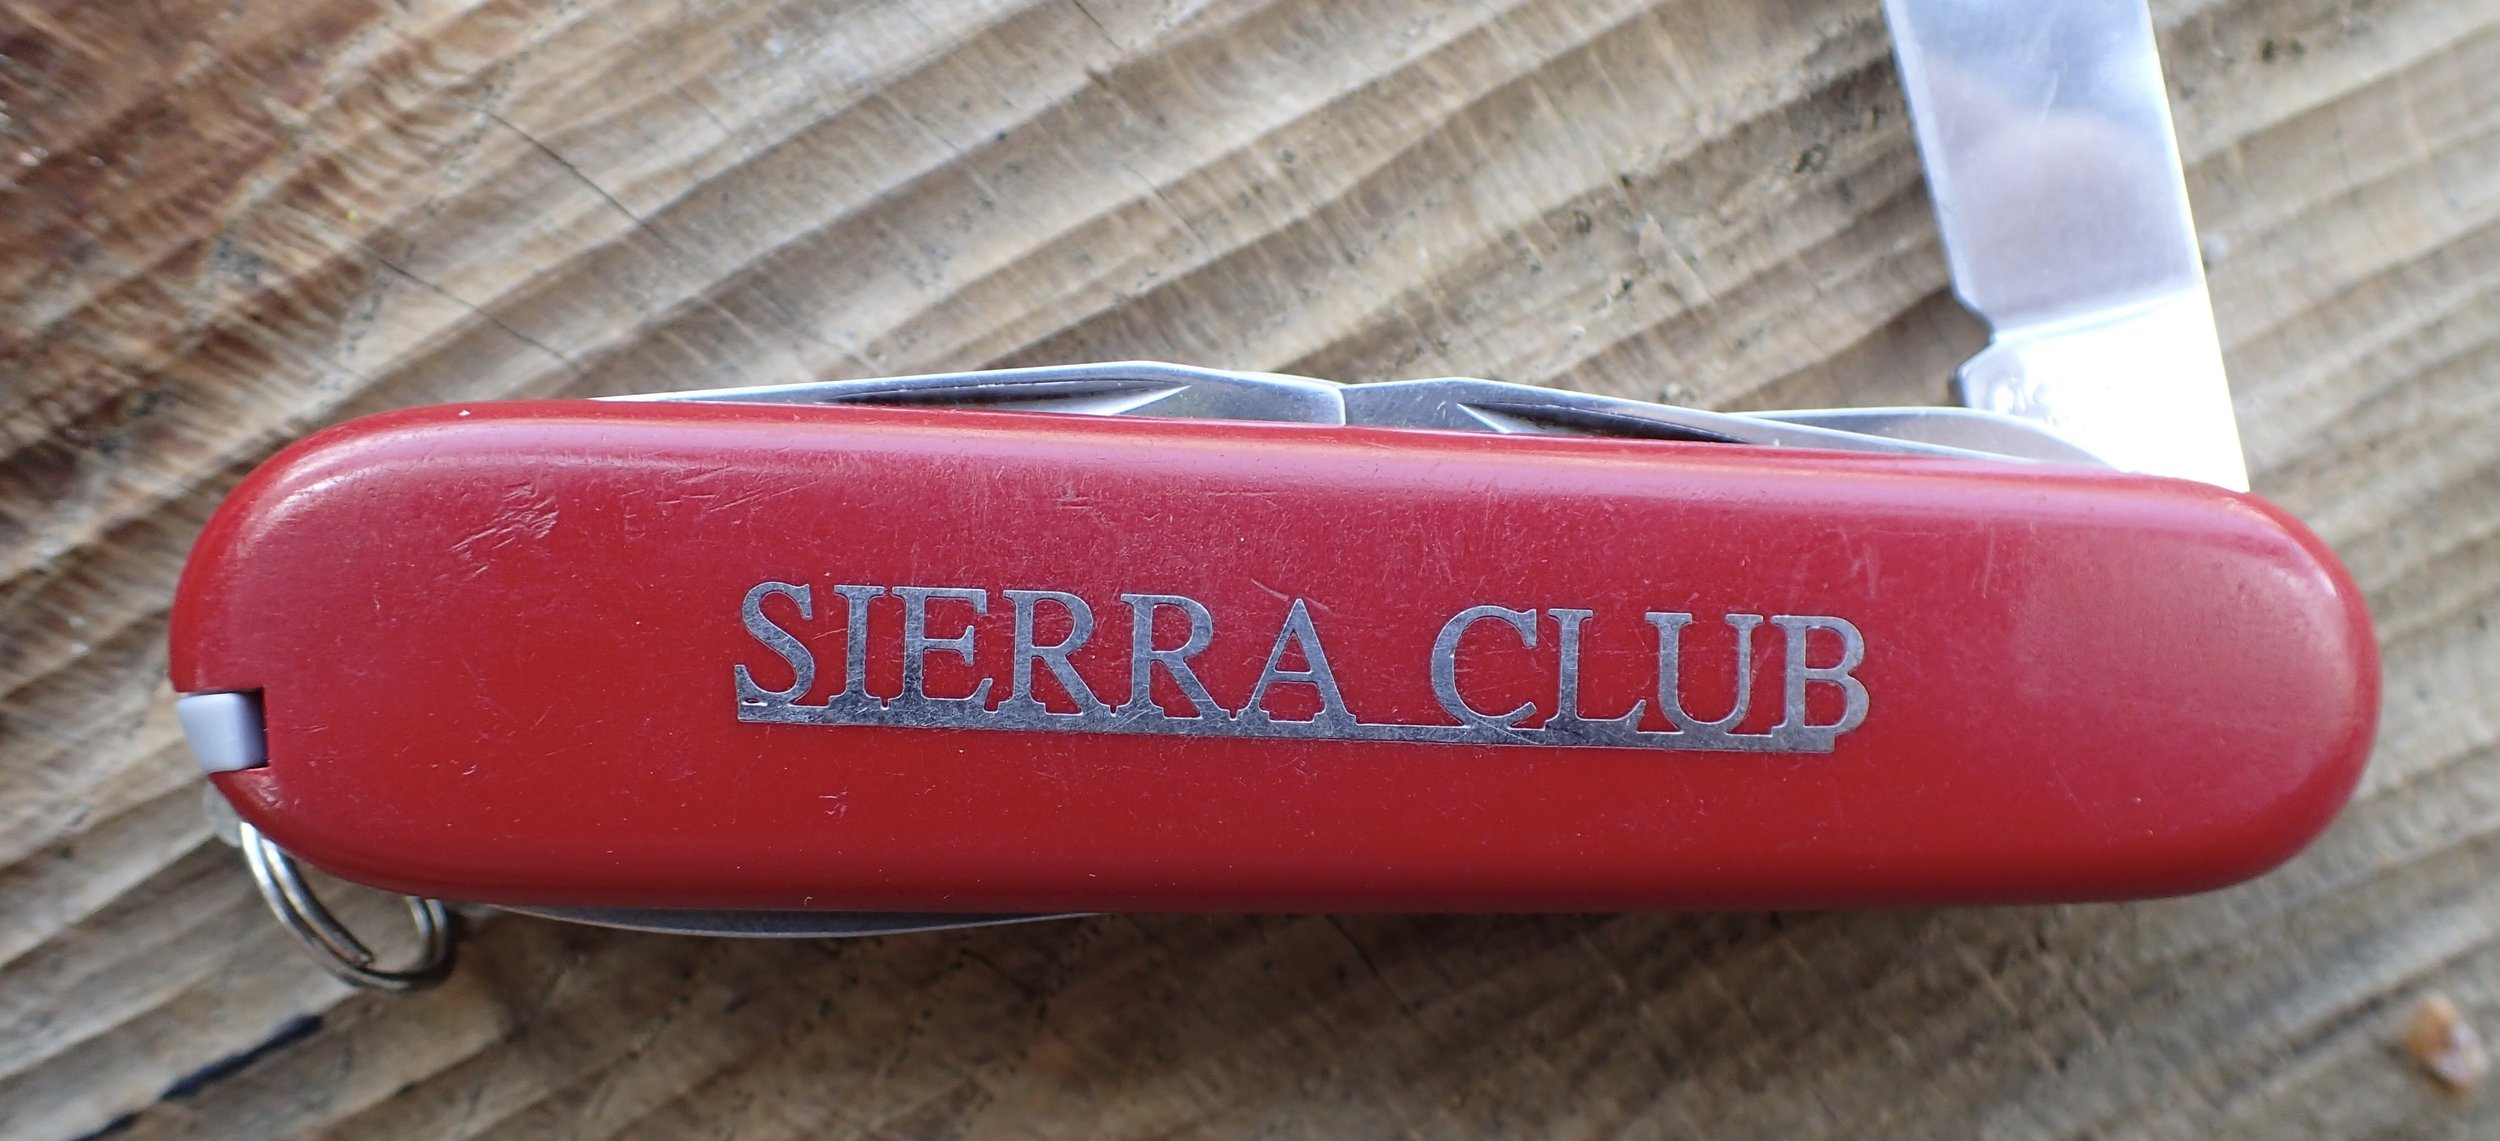 The Sierra Club Climber from the early 1980s.